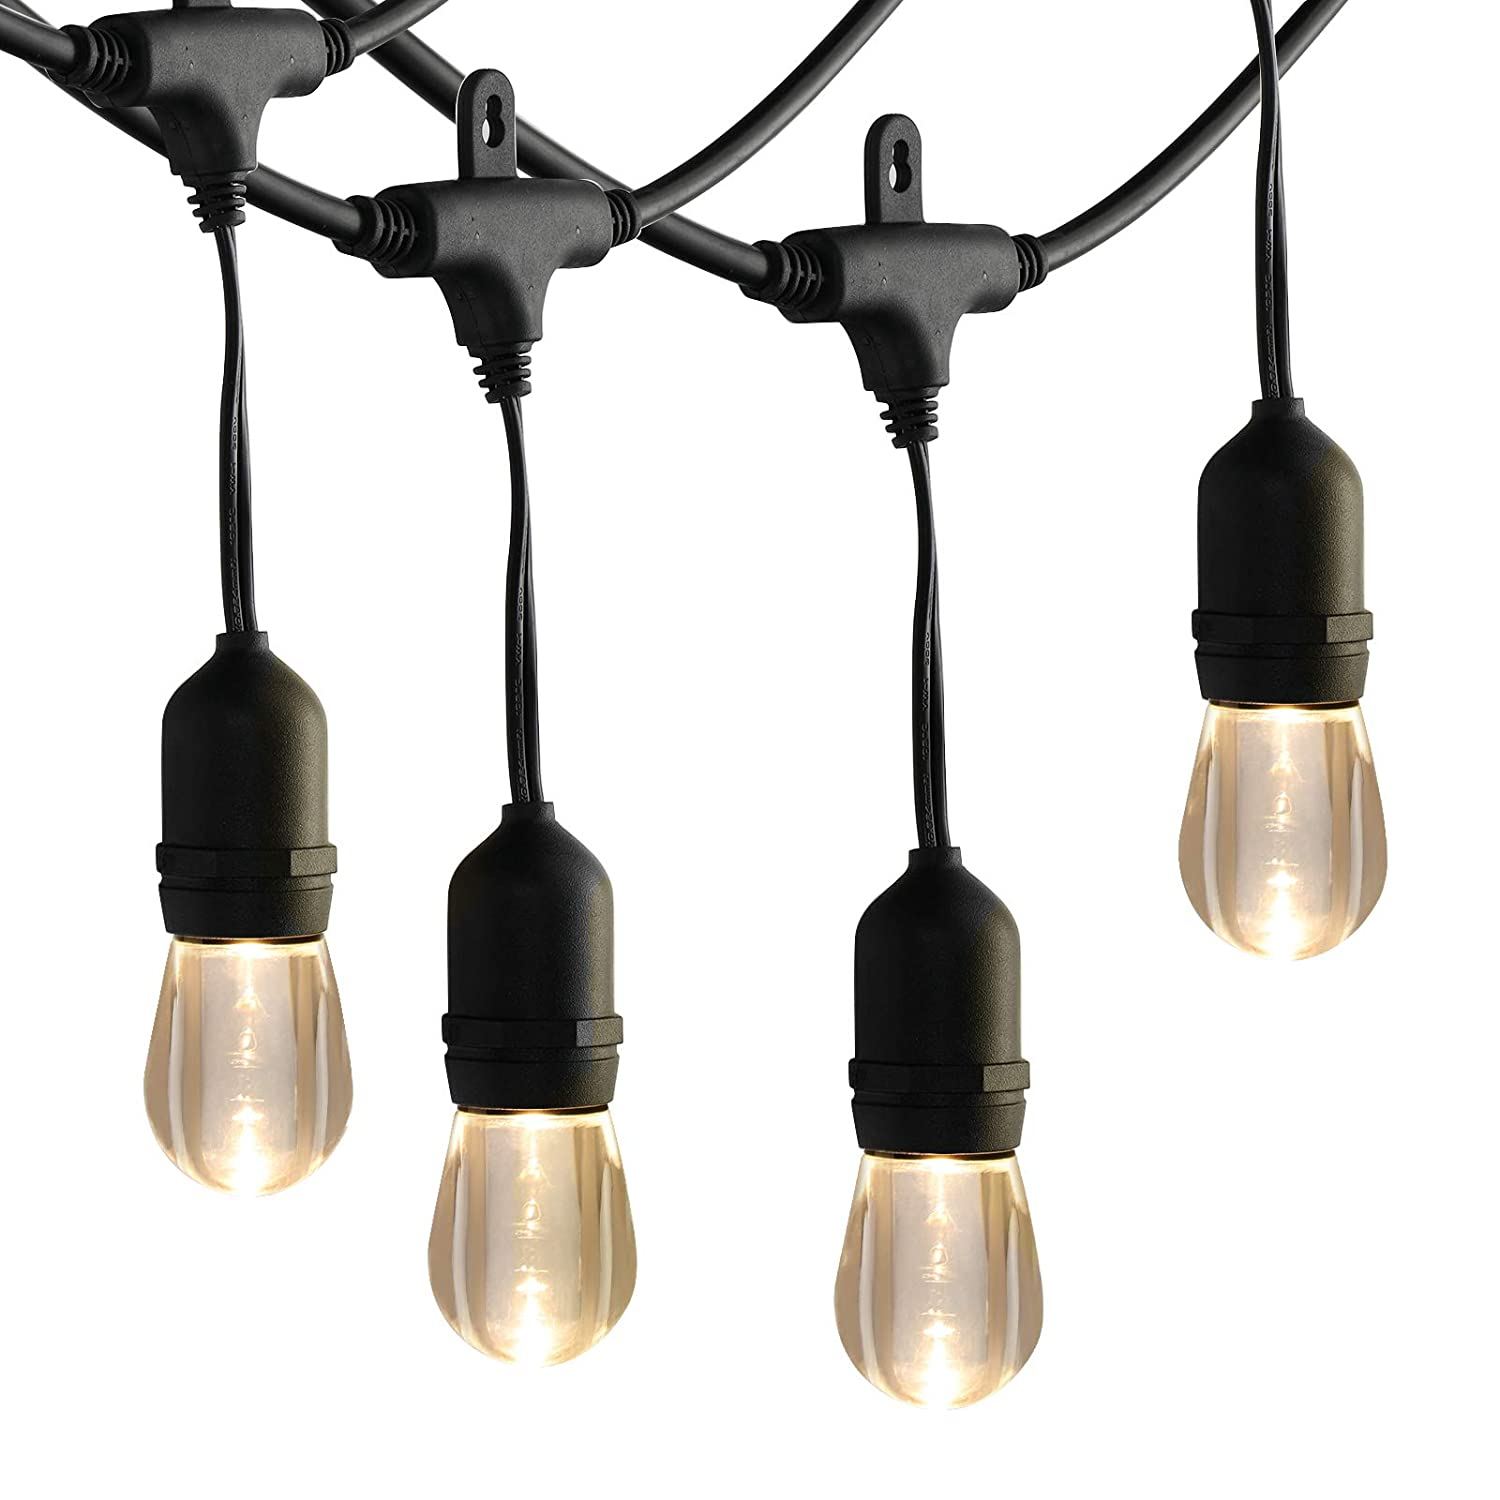 UL Listed 2ft Bulb Space Commercial Grade Hanging Patio Lights for Backyard Porch Bistro Pool Wedding 24ft 12 Acrylic Shatterproof S14 Bulbs DEWENWILS Waterproof LED String Lights Outdoor